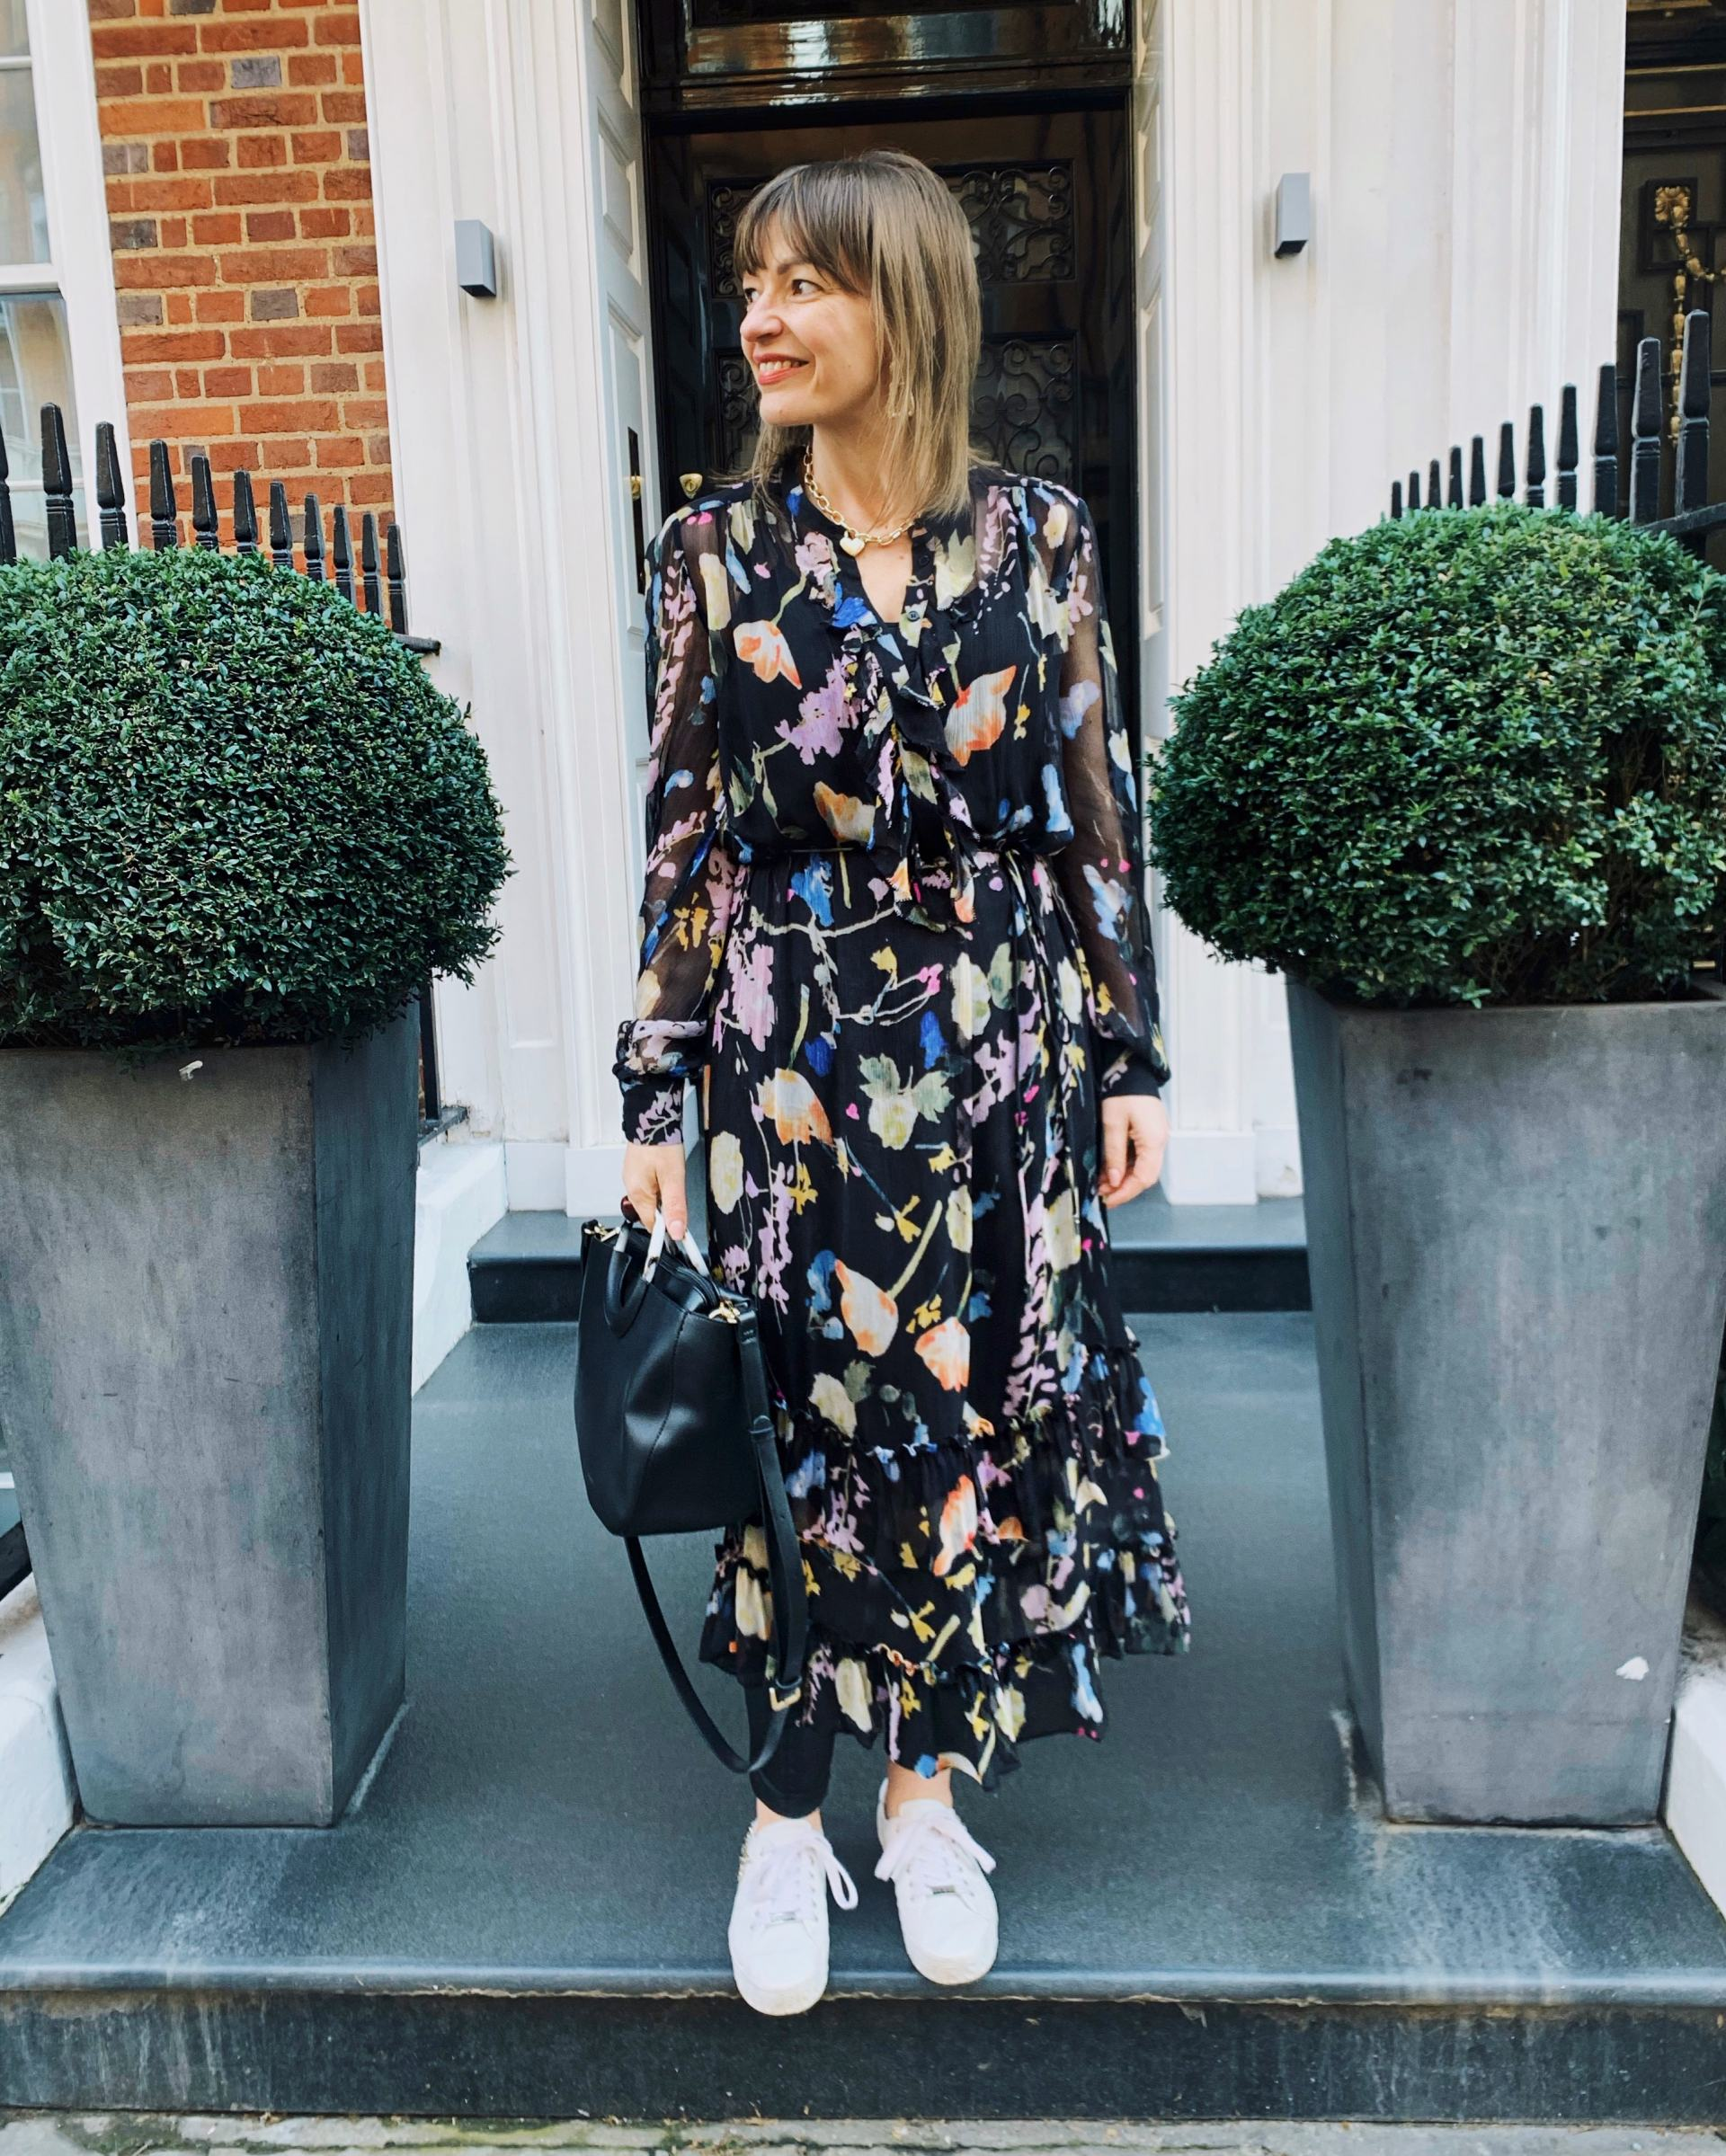 Lizzi wearing a dark floral dress with faux leather leggings and styled with white trainers, a black tote bag and a gold chain necklace.